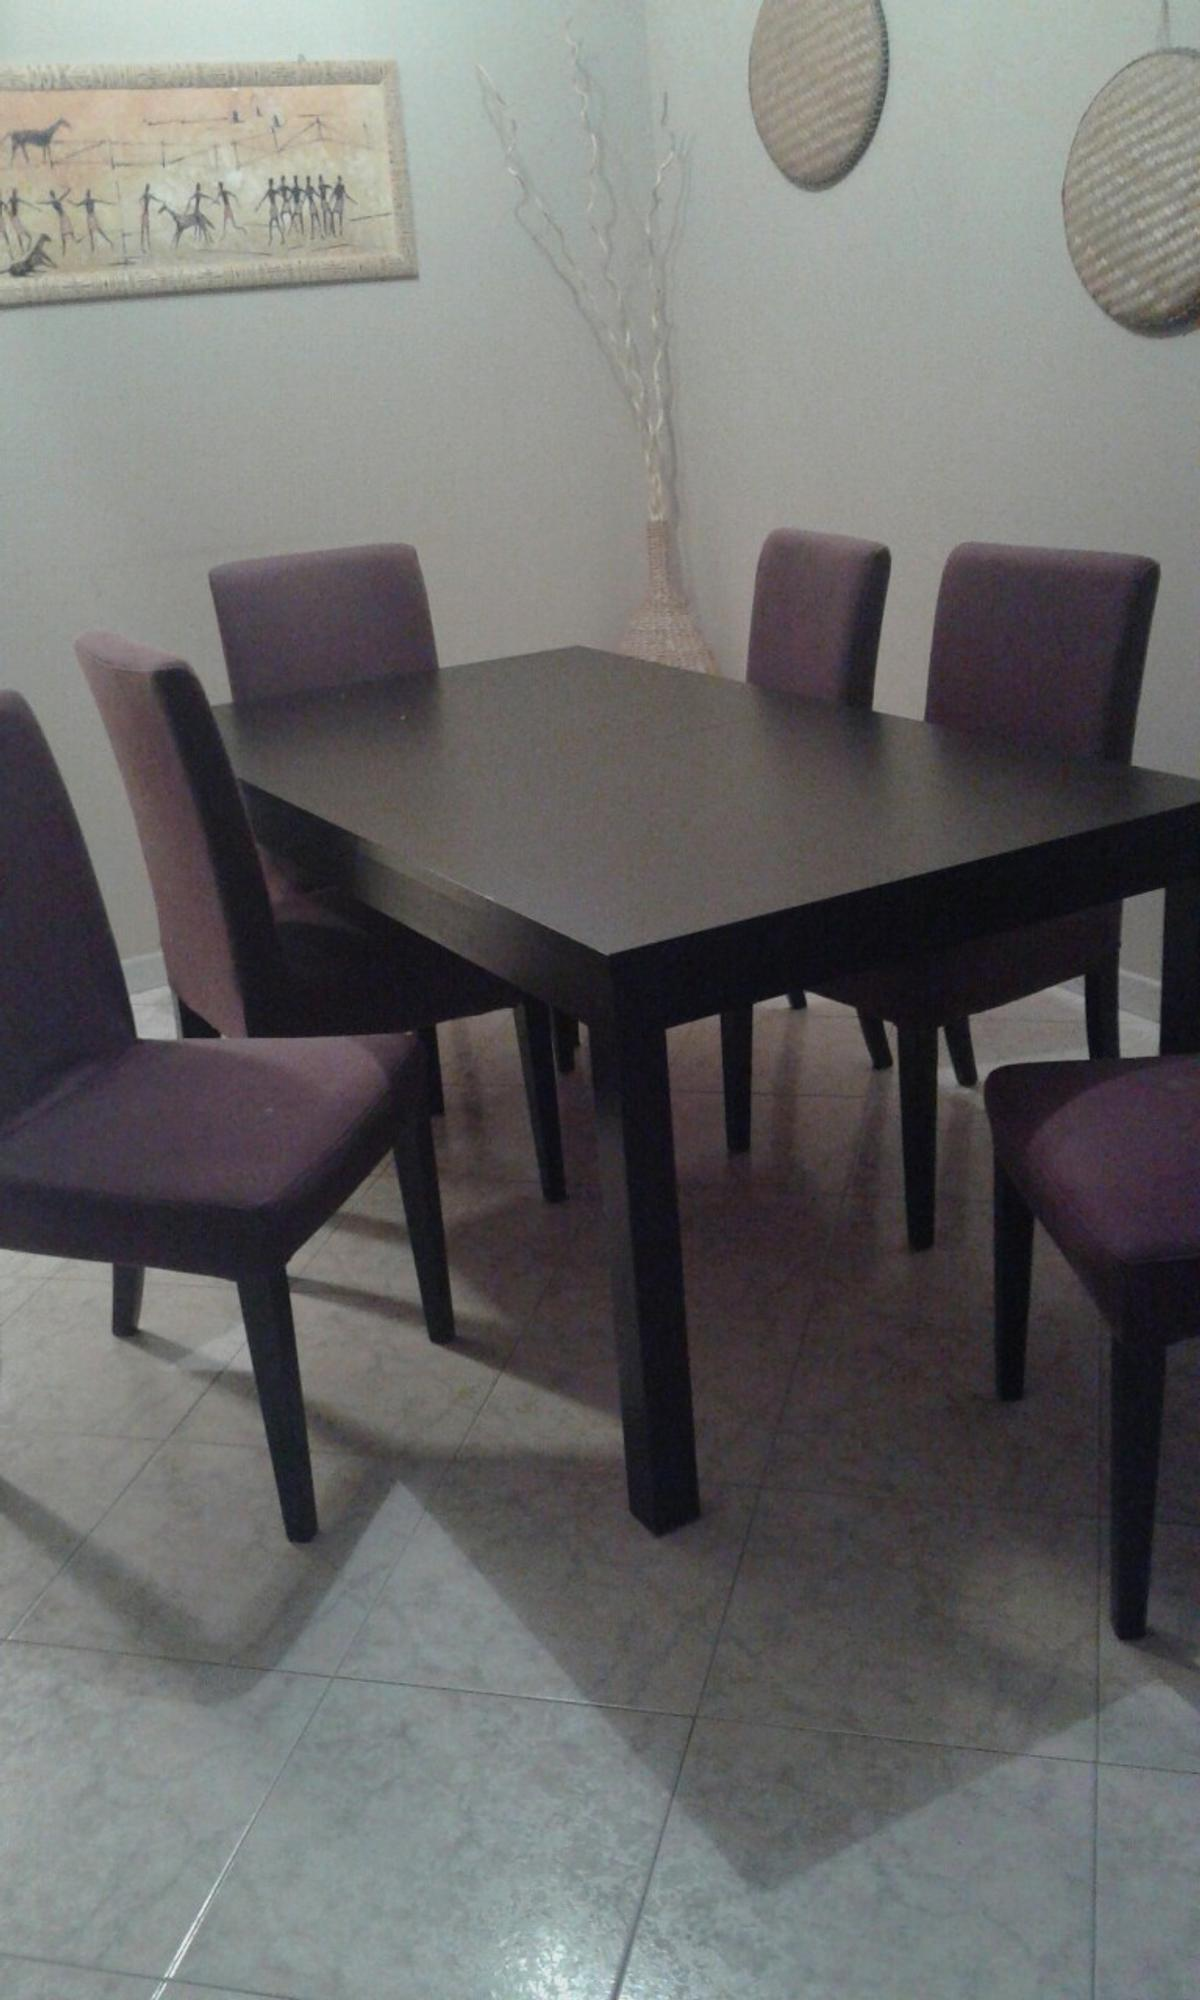 Tavolo E Sedie Ikea In 42023 Campegine For 150 00 For Sale Shpock